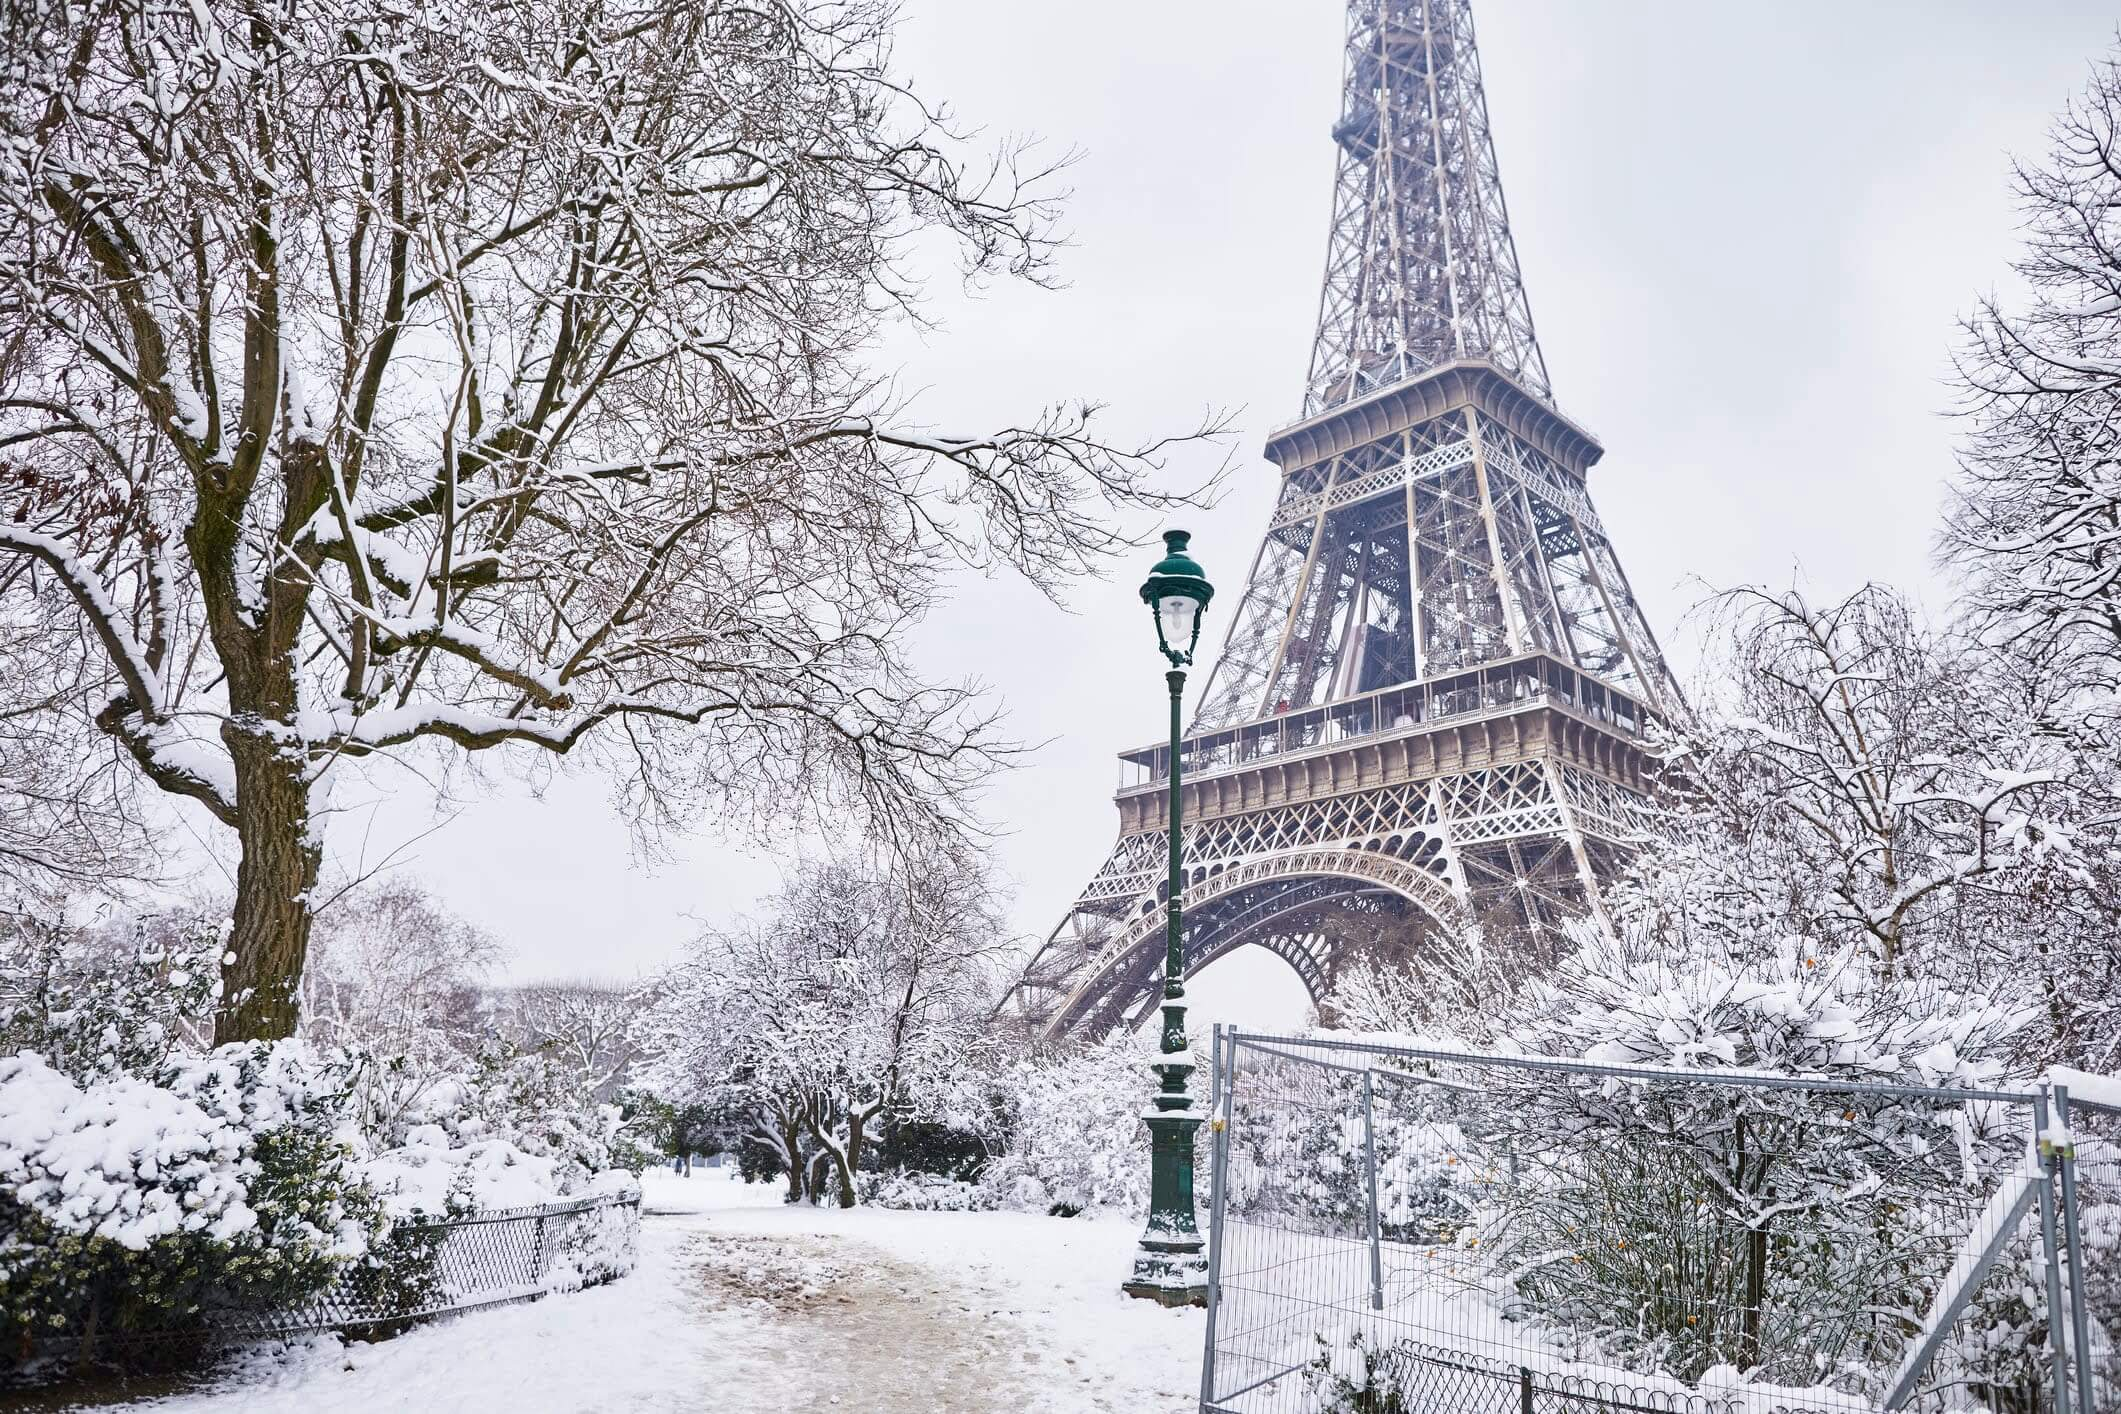 Eiffel Tower covered in snow